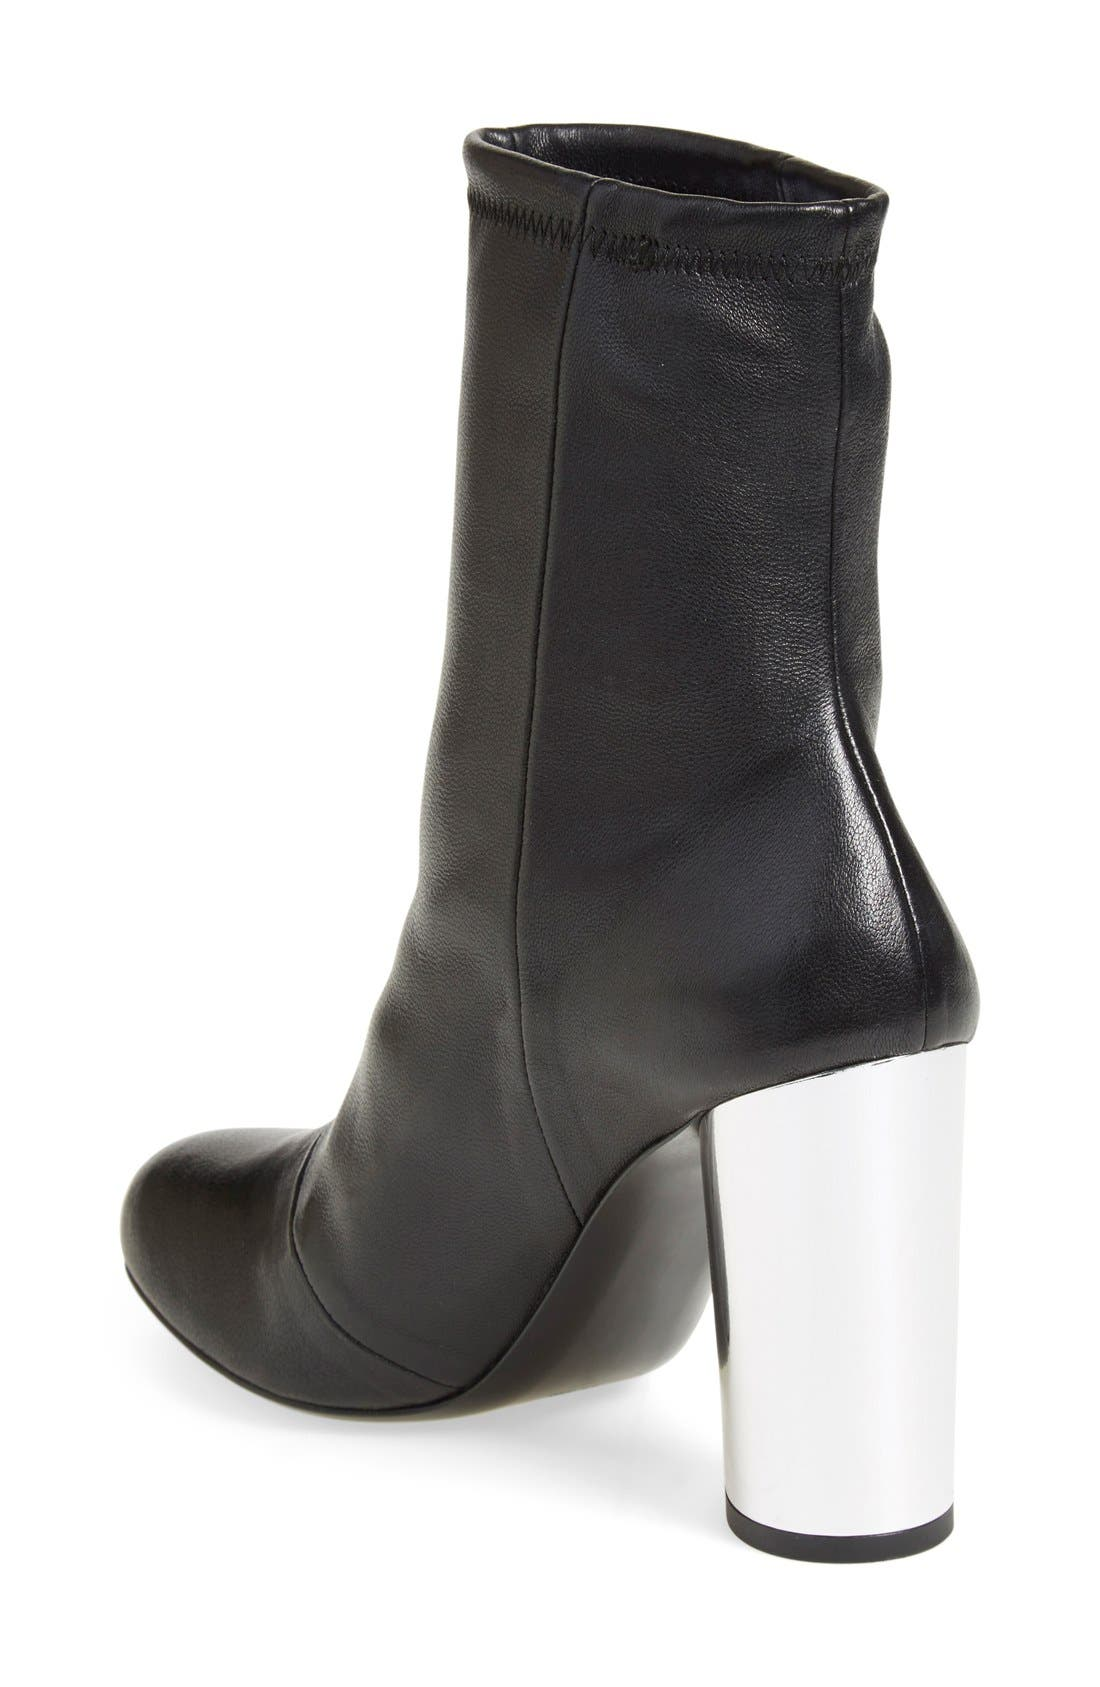 'Zloty' Round Toe Bootie,                             Alternate thumbnail 3, color,                             002